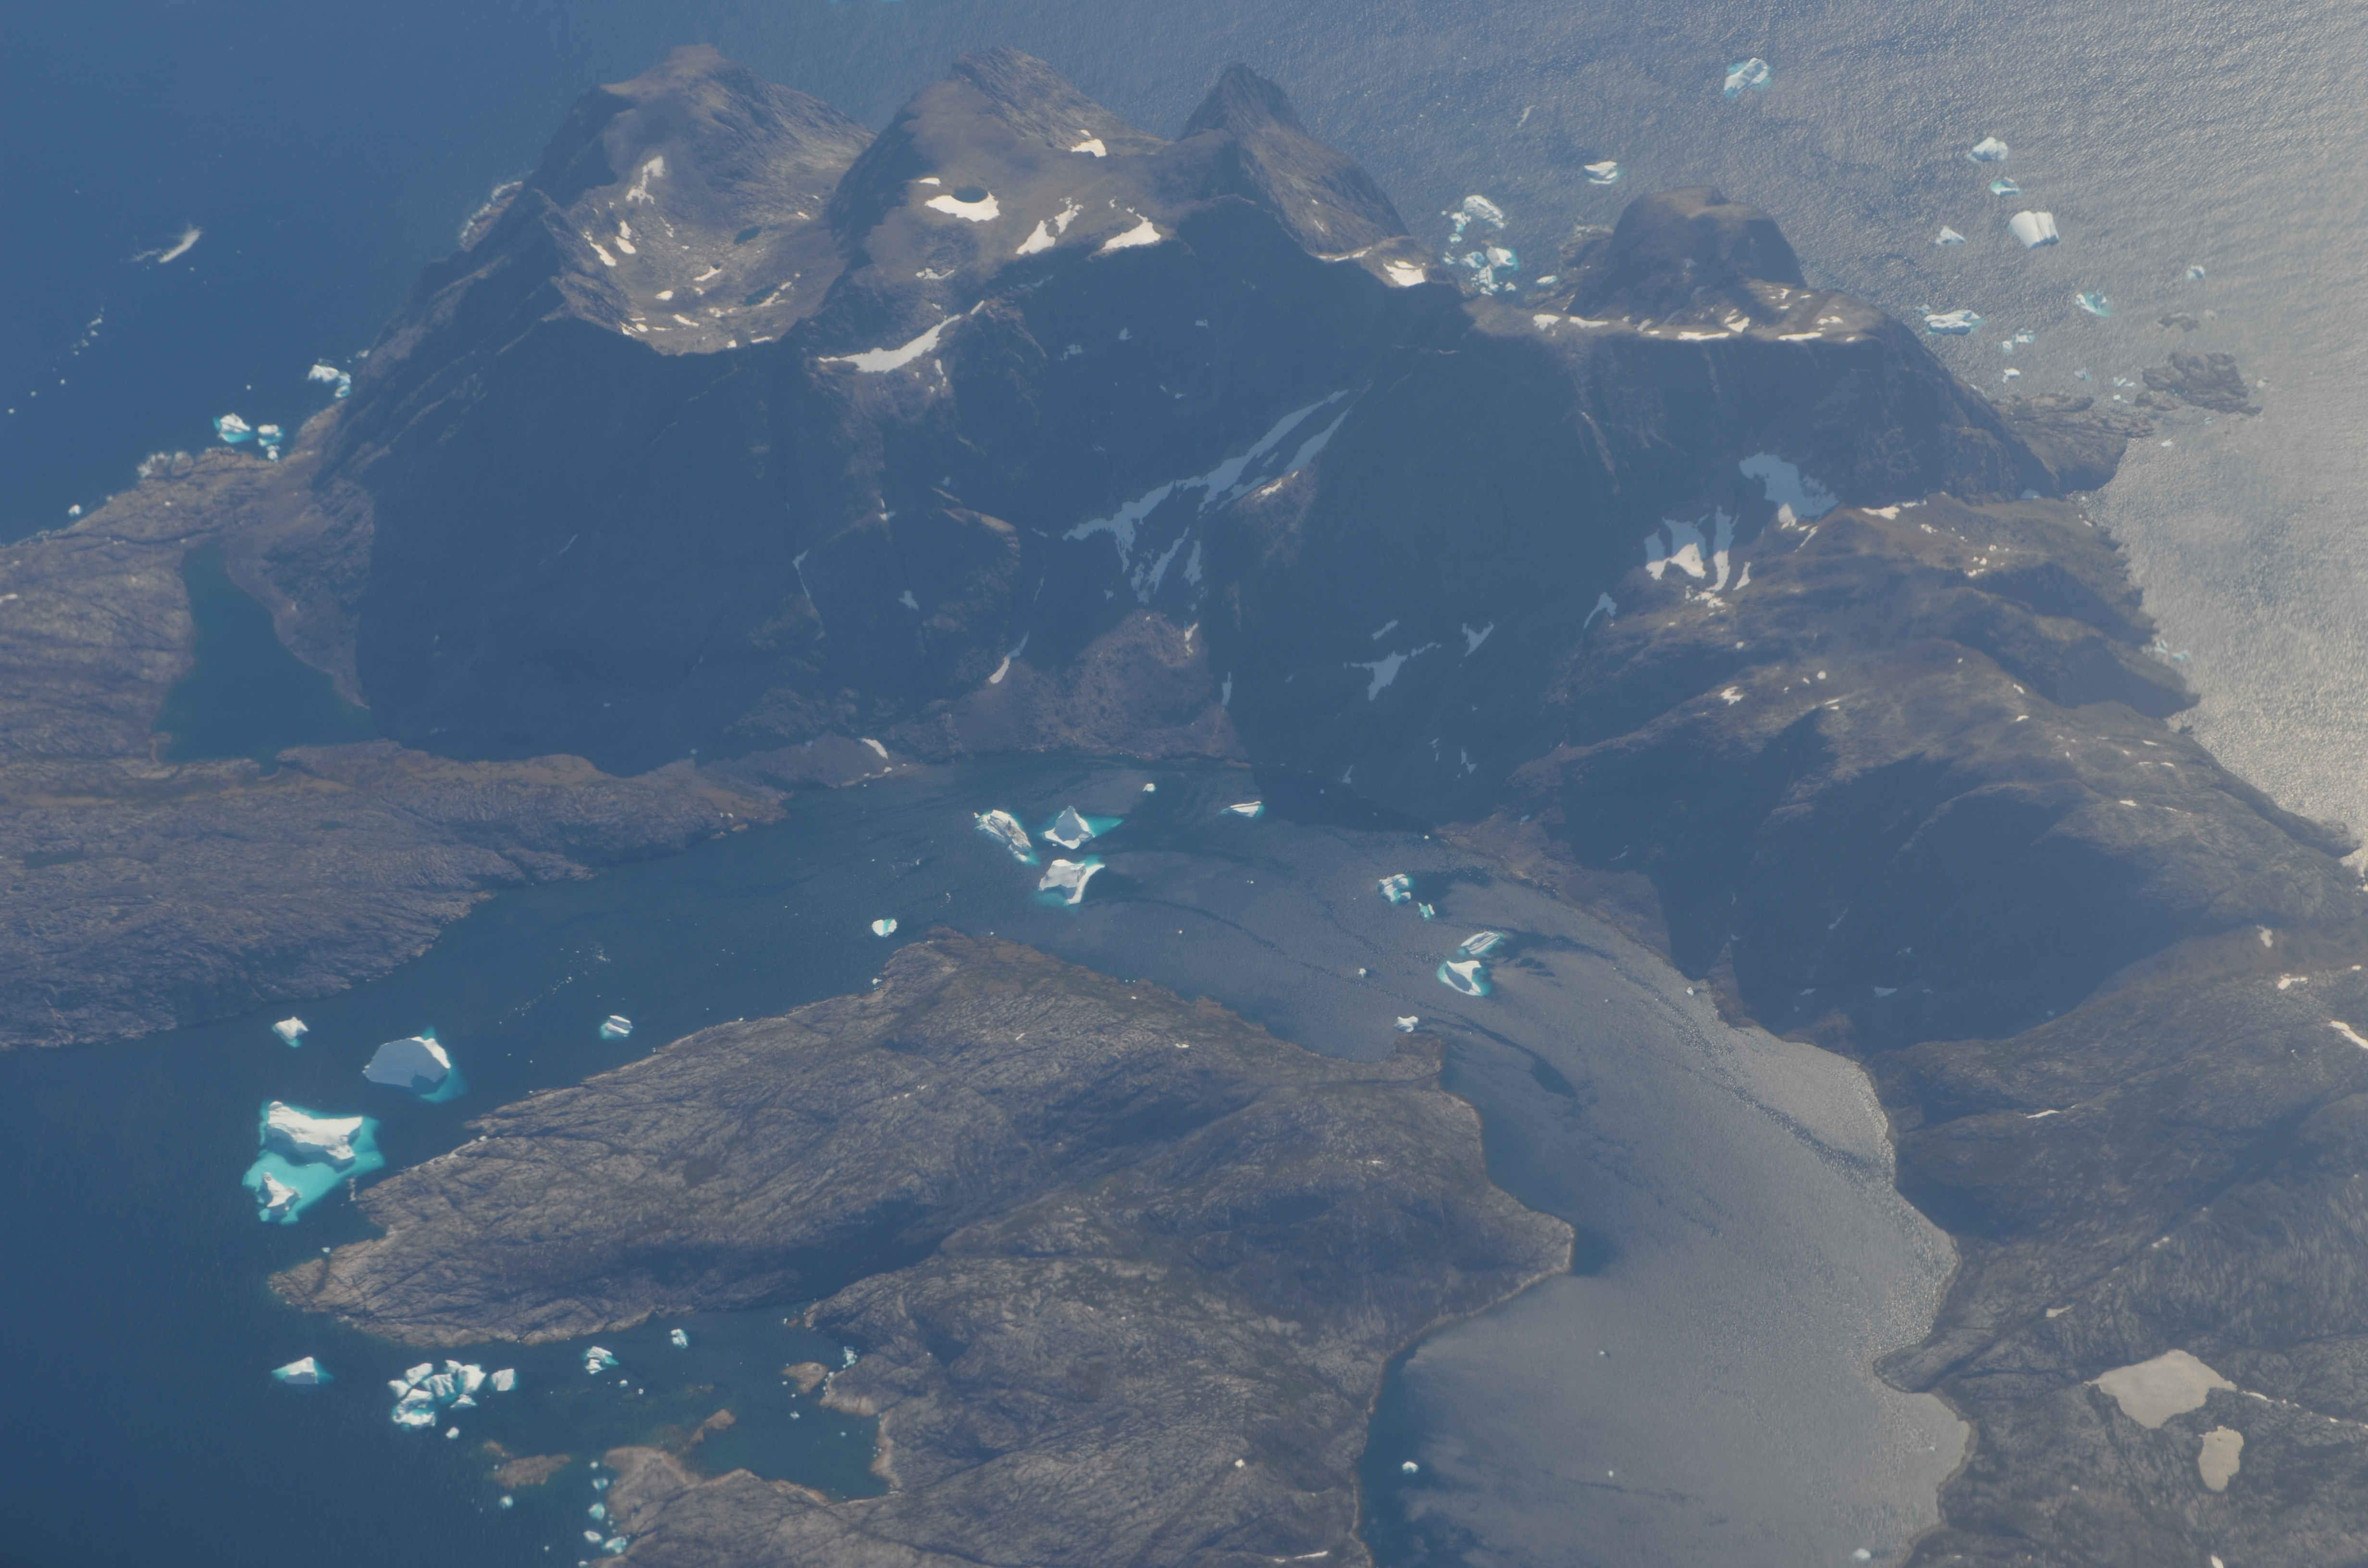 In the footsteps of the Greenland Vikings, Part 2 – The blue ice viewed from the air